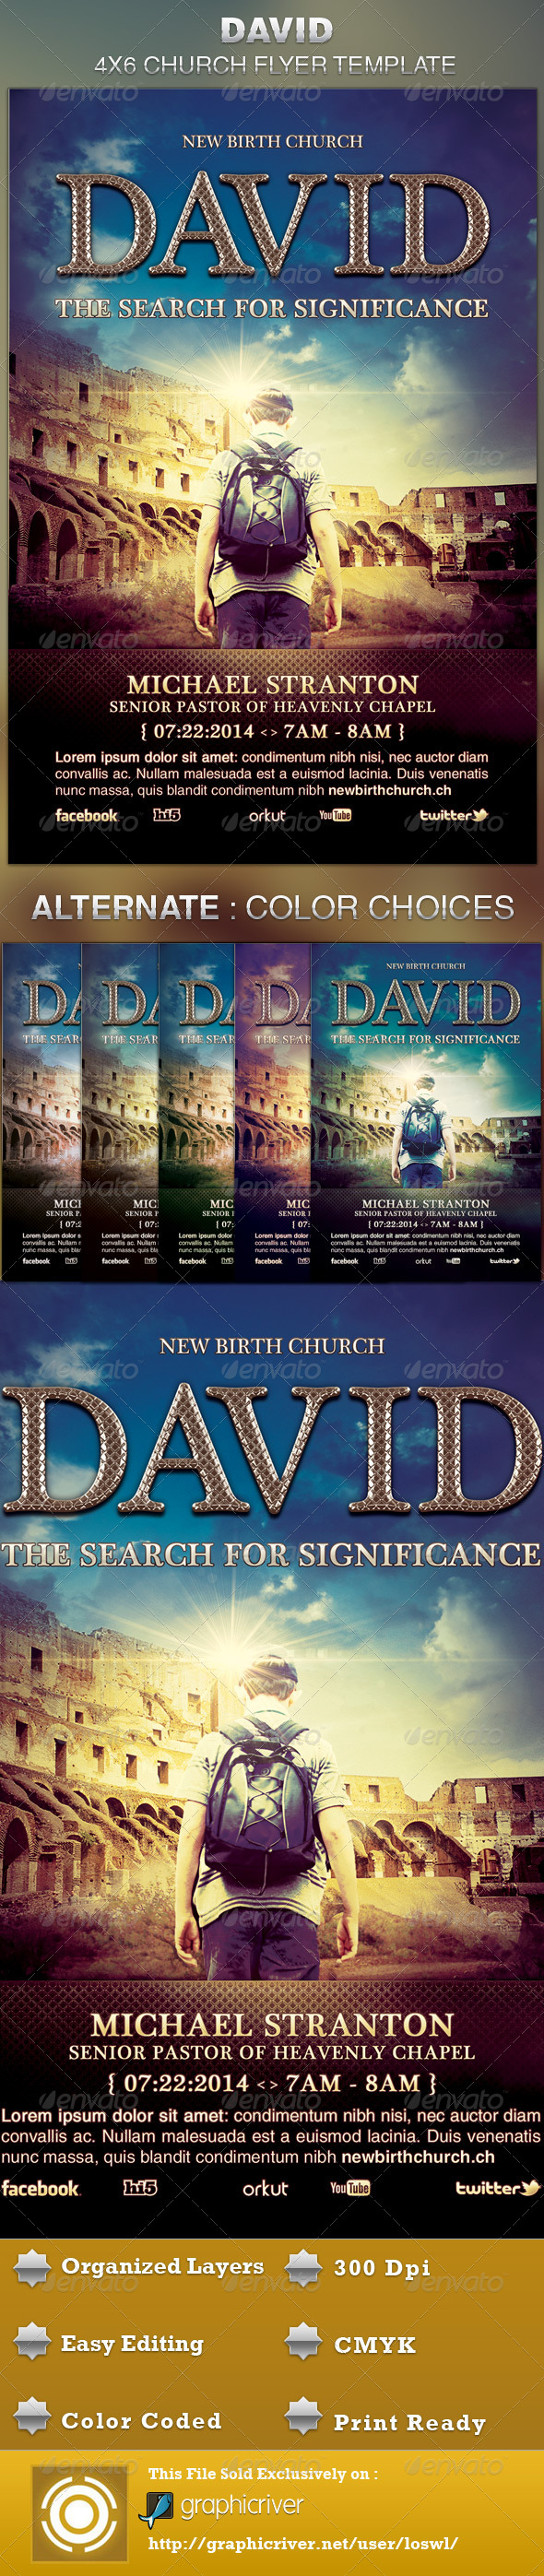 David Church Flyer Template - Church Flyers